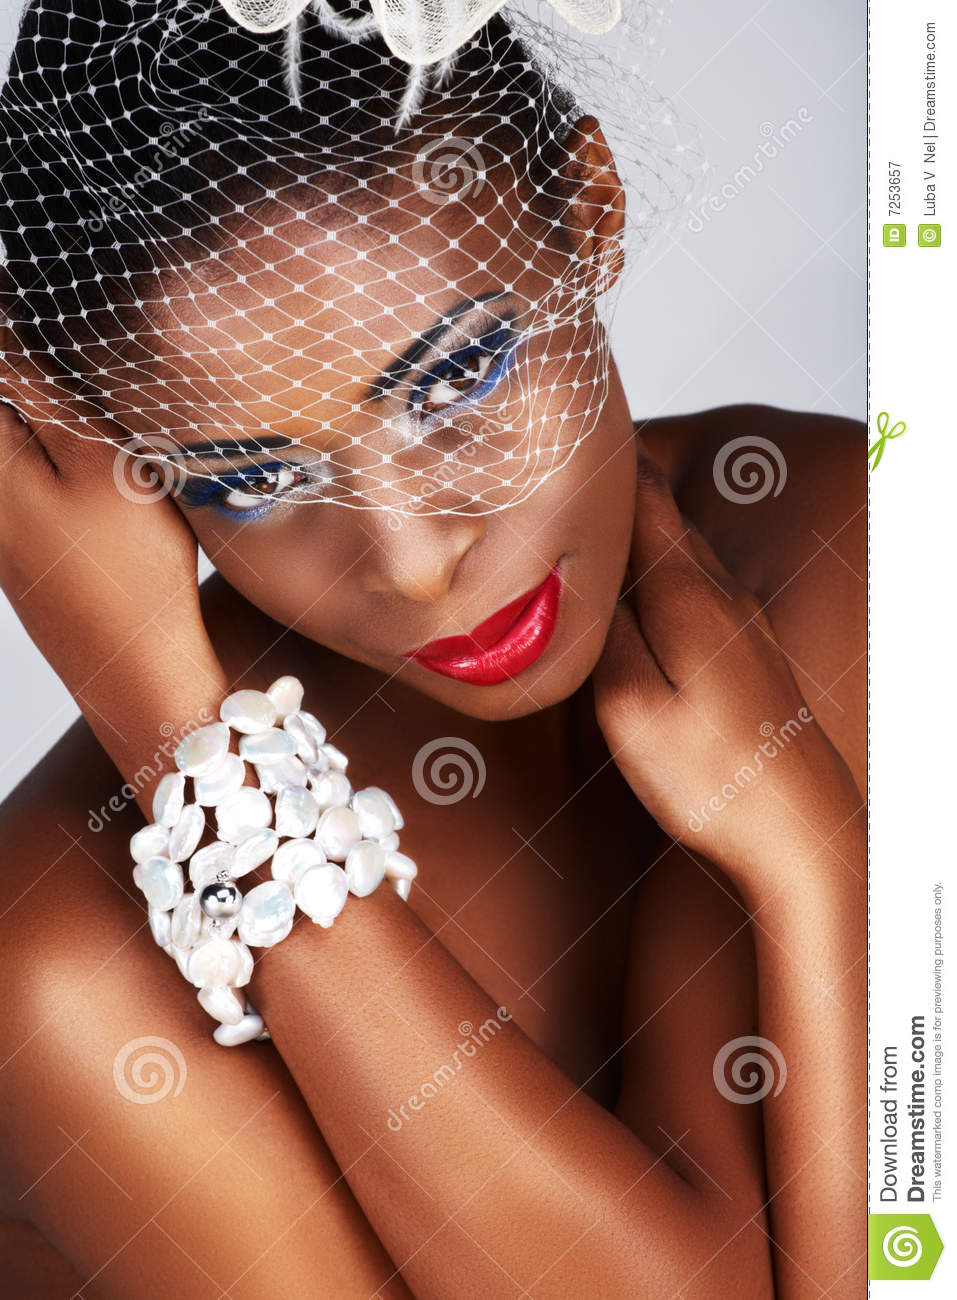 African woman with white net